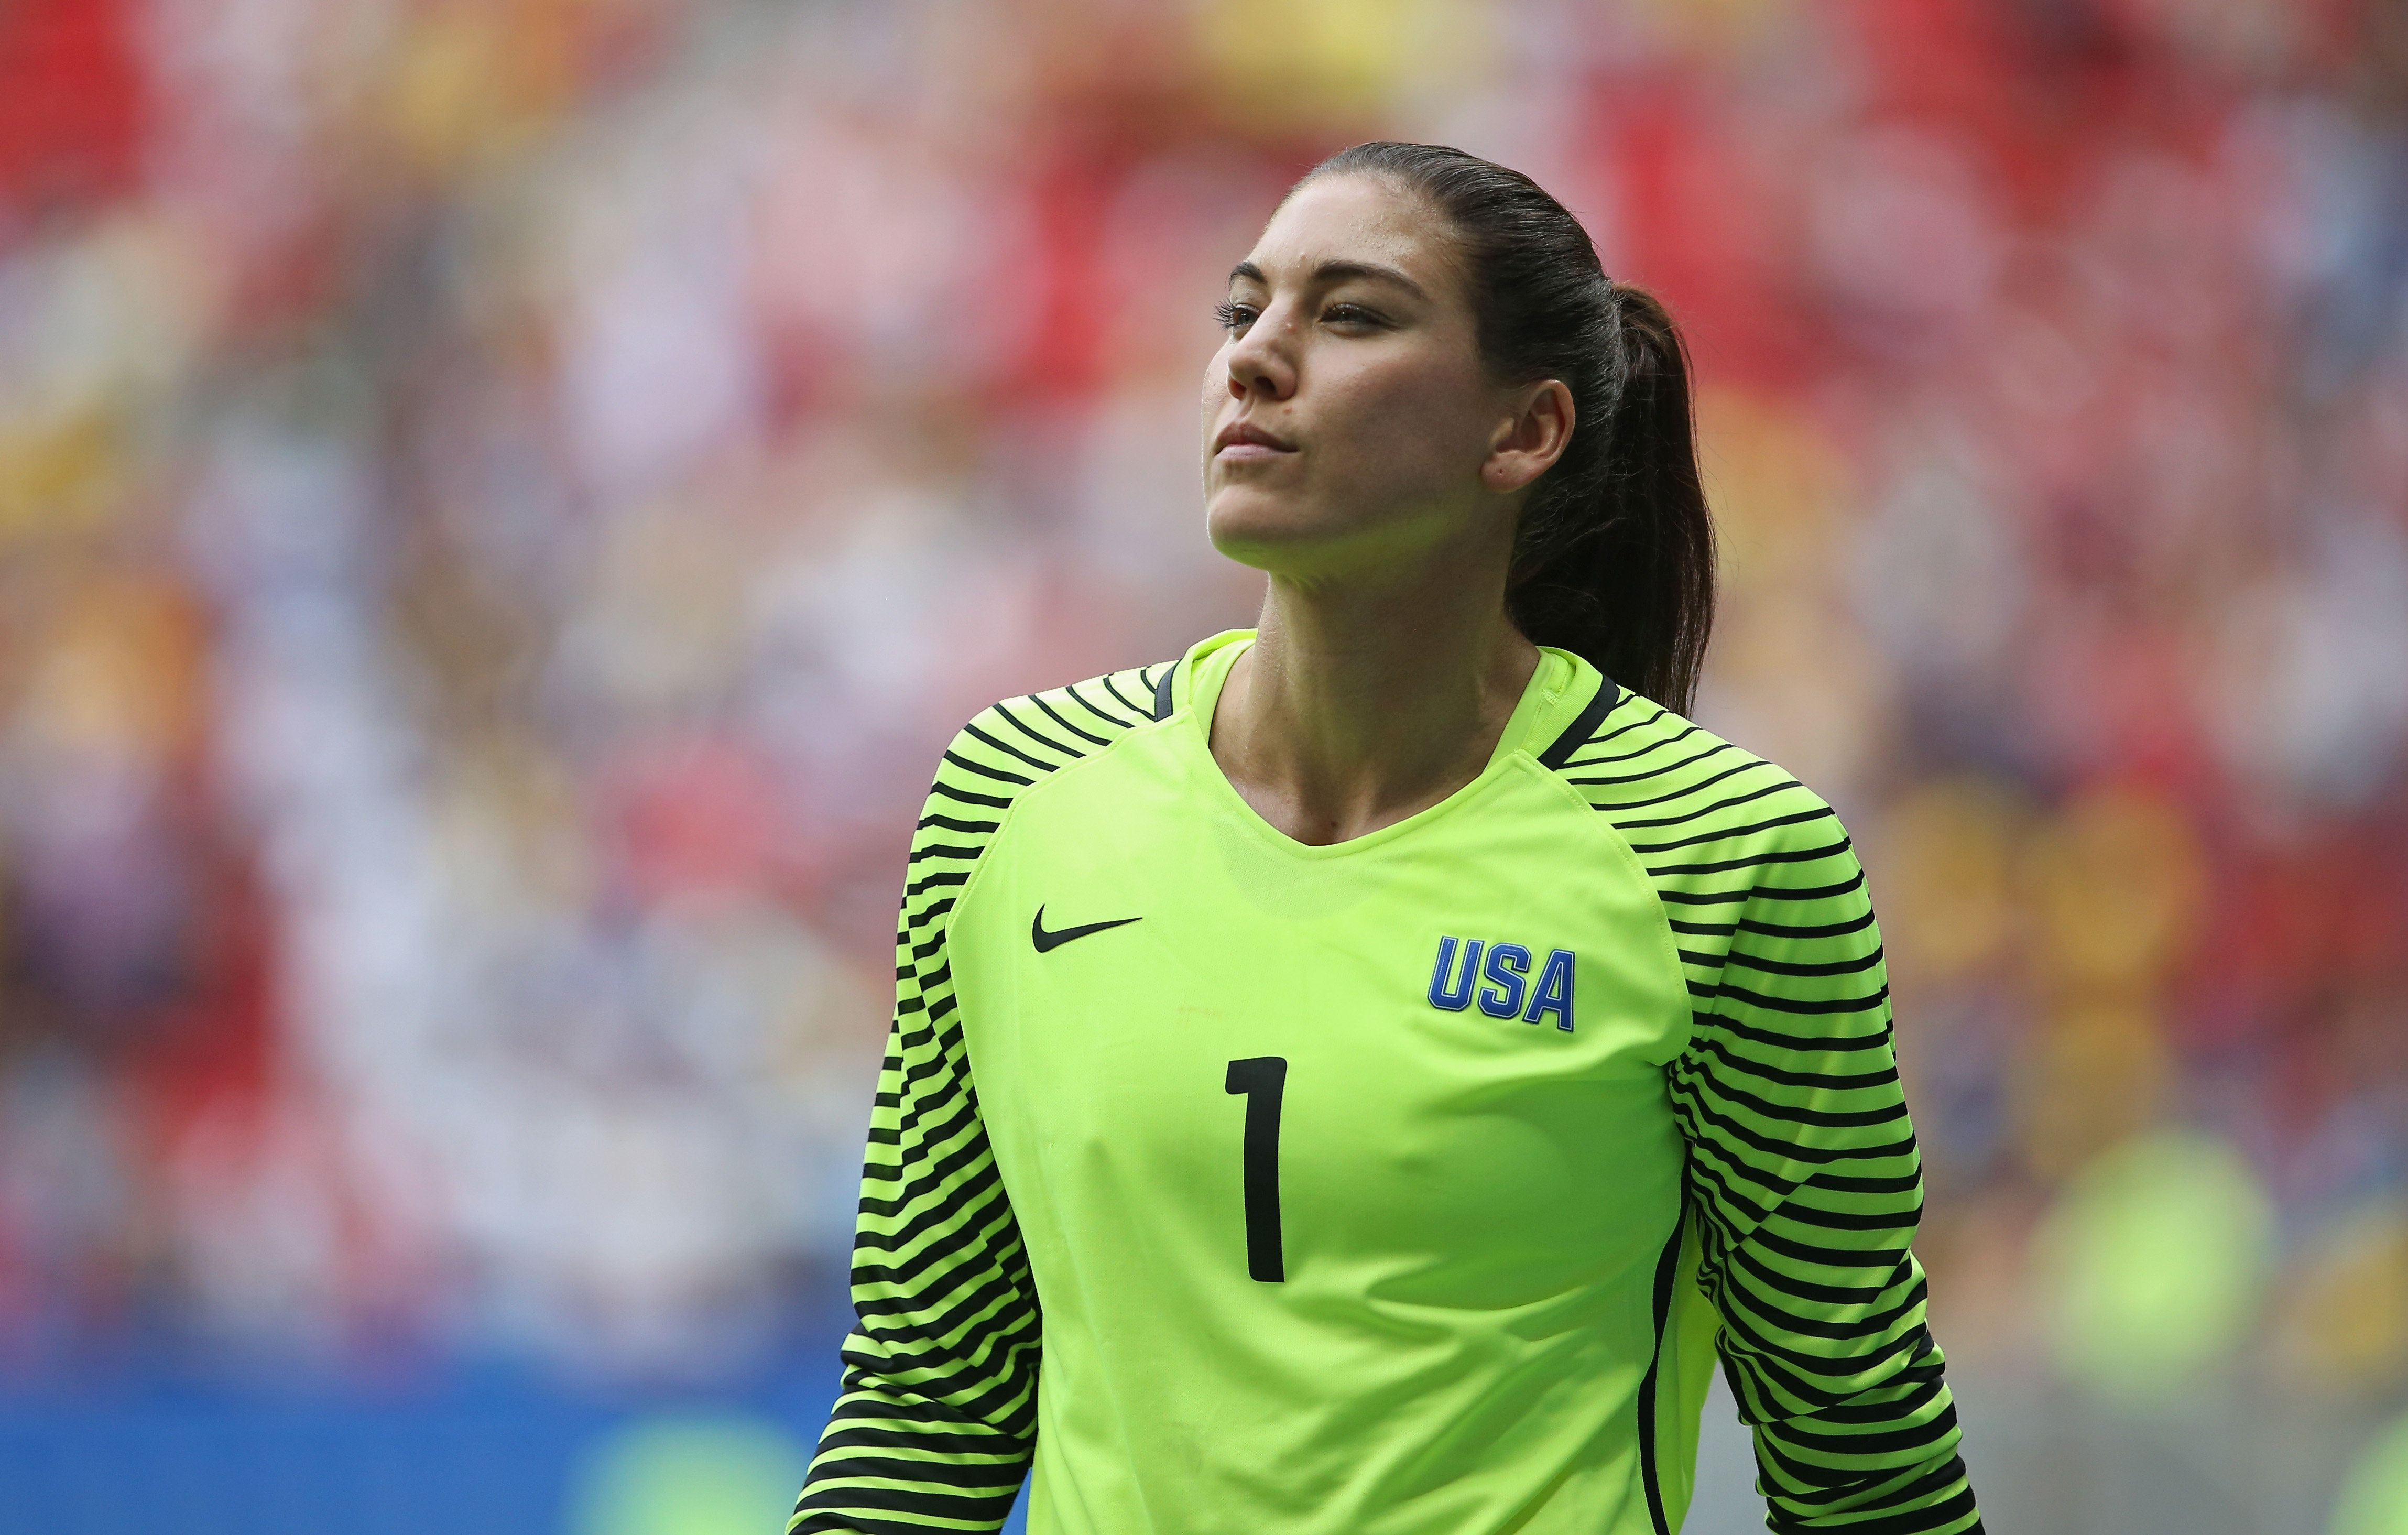 BRASILIA, BRAZIL - AUGUST 12: Hope Solo of the United States looks on during the penalty shoot out during the Women's Quarter Final match between United States and Sweden on Day 7 of the Rio 2016 Olympic Games at Mane Garrincha Stadium on August 12, 2016 in Brasilia, Brazil. (Photo by Steve Bardens-FIFA/FIFA via Getty Images)